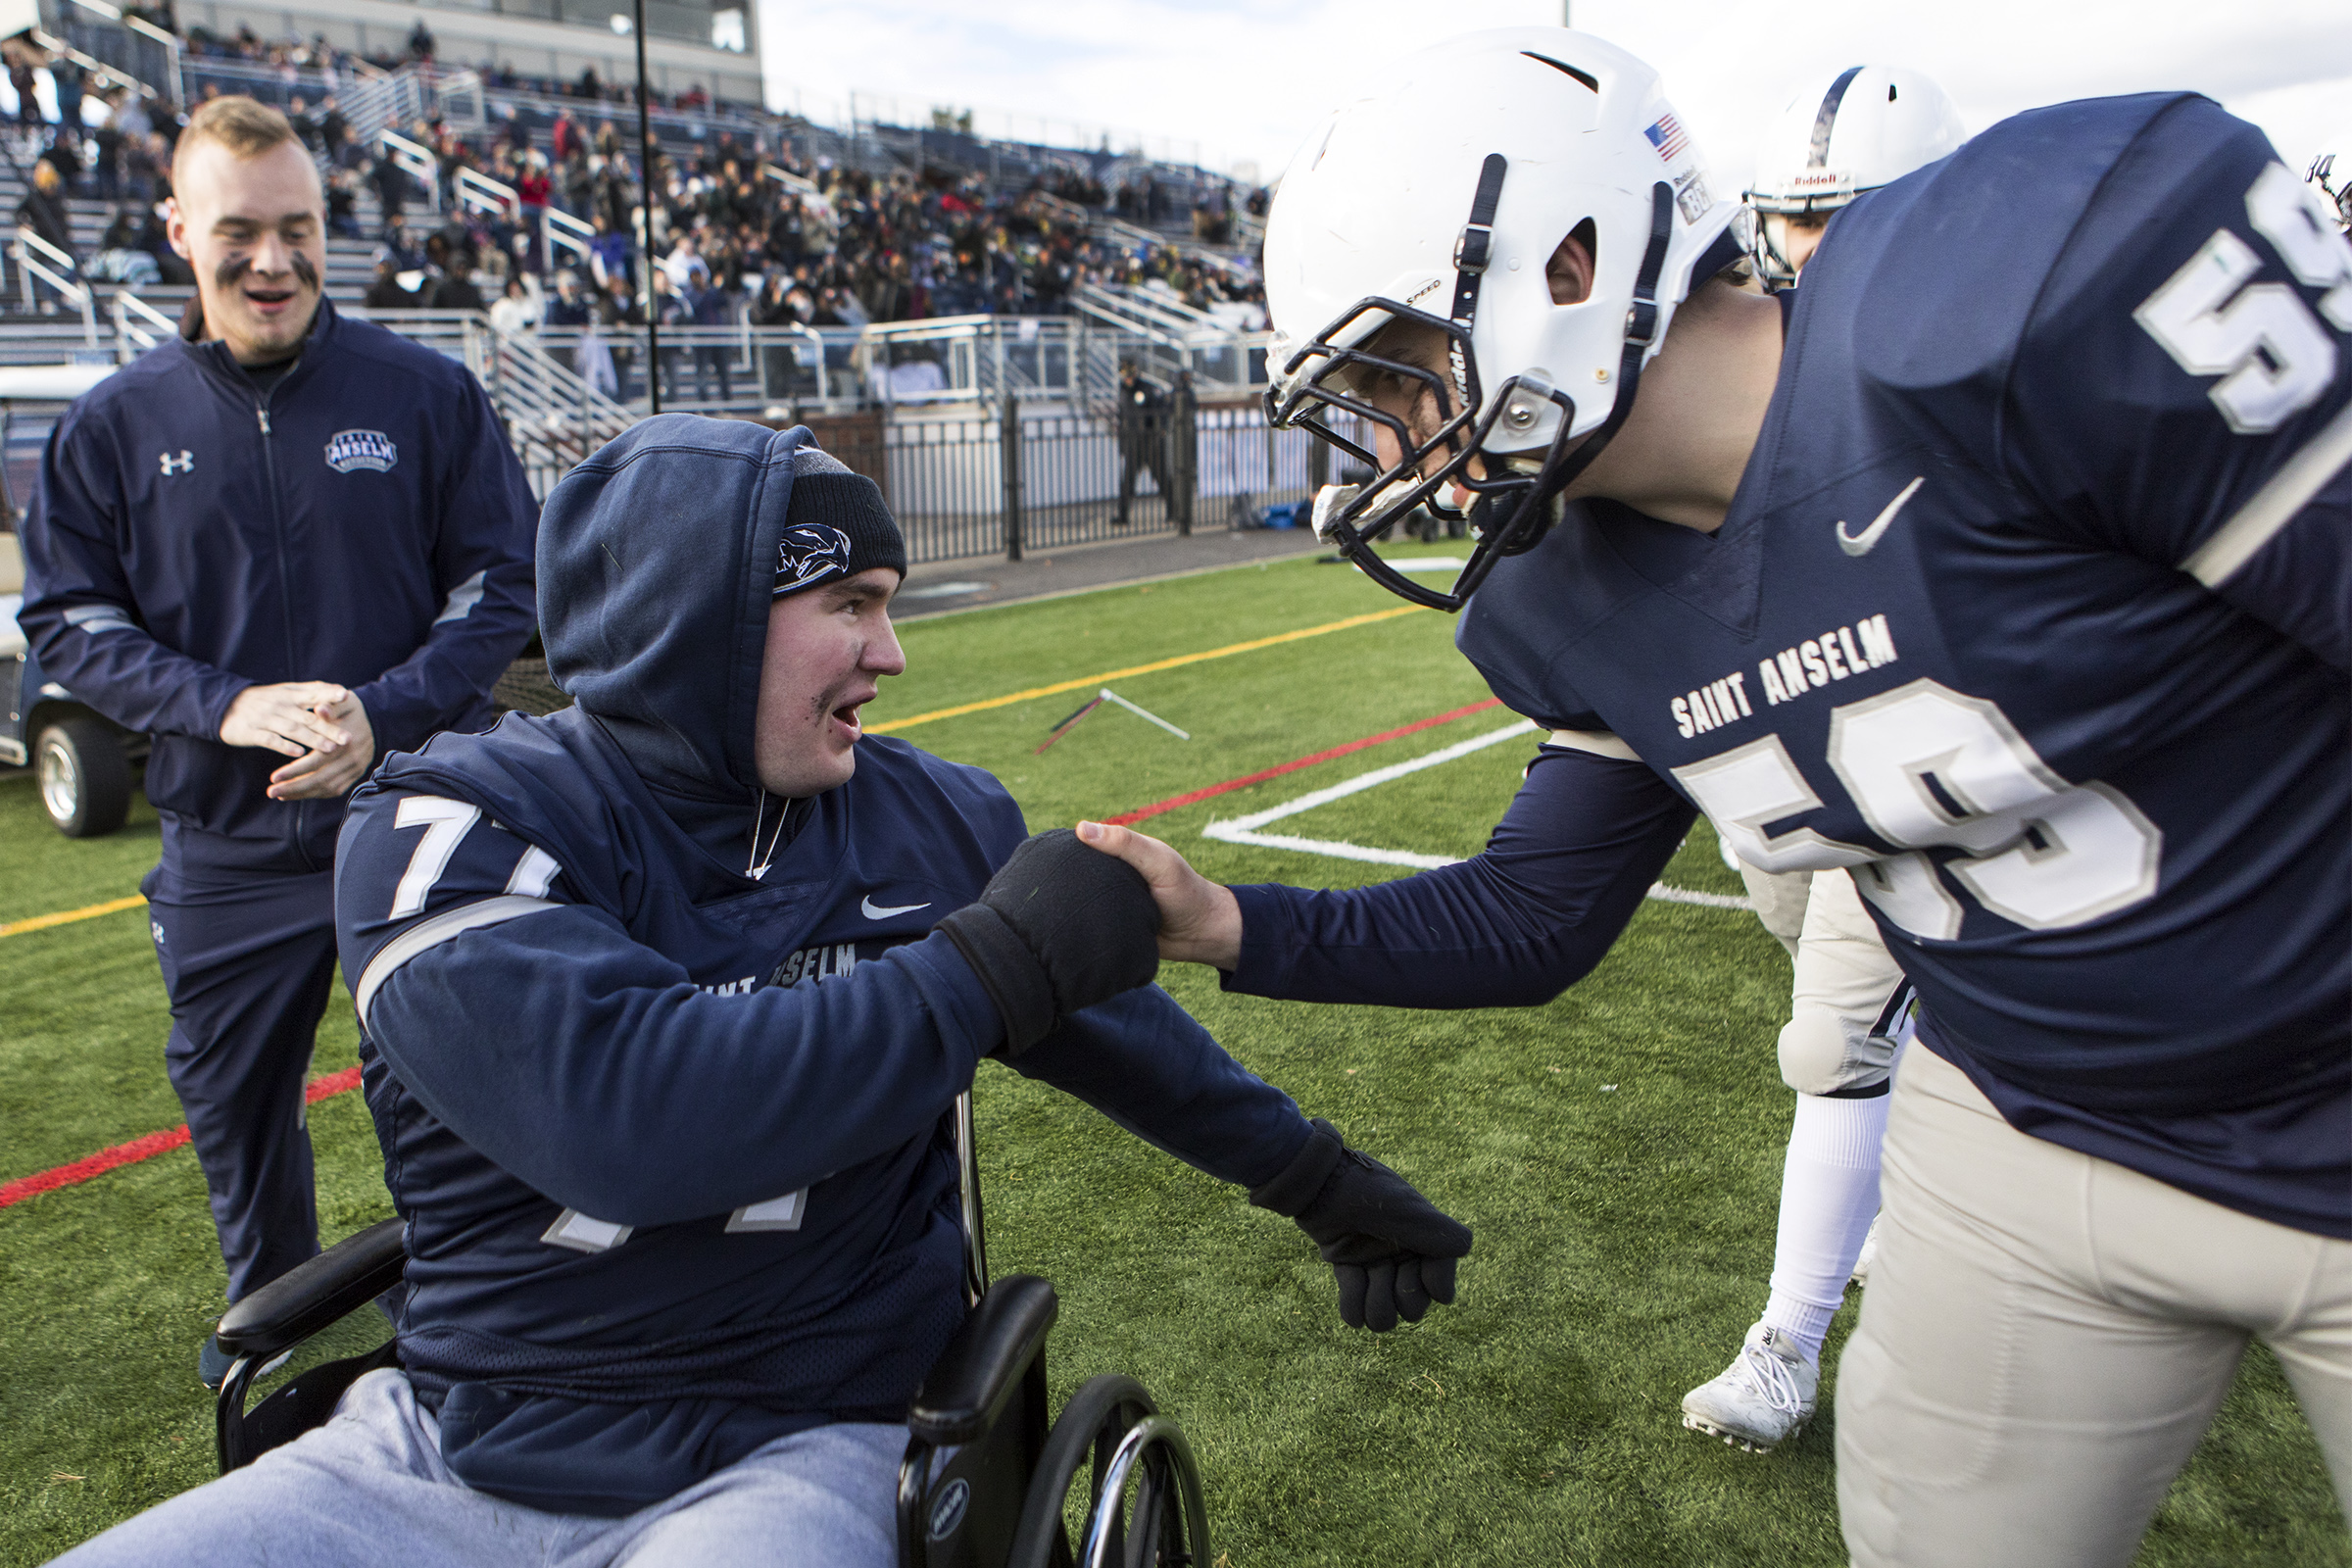 Connor greets his teammate Luke Hufnagle during their final football game of the season at Saint Anselm College in Manchester, New Hampshire, on Nov. 10, 2018. Even after suffering a spinal cord injury on the field, Connor said it was one of the hardest decisions of his life not to return to the game he loved.